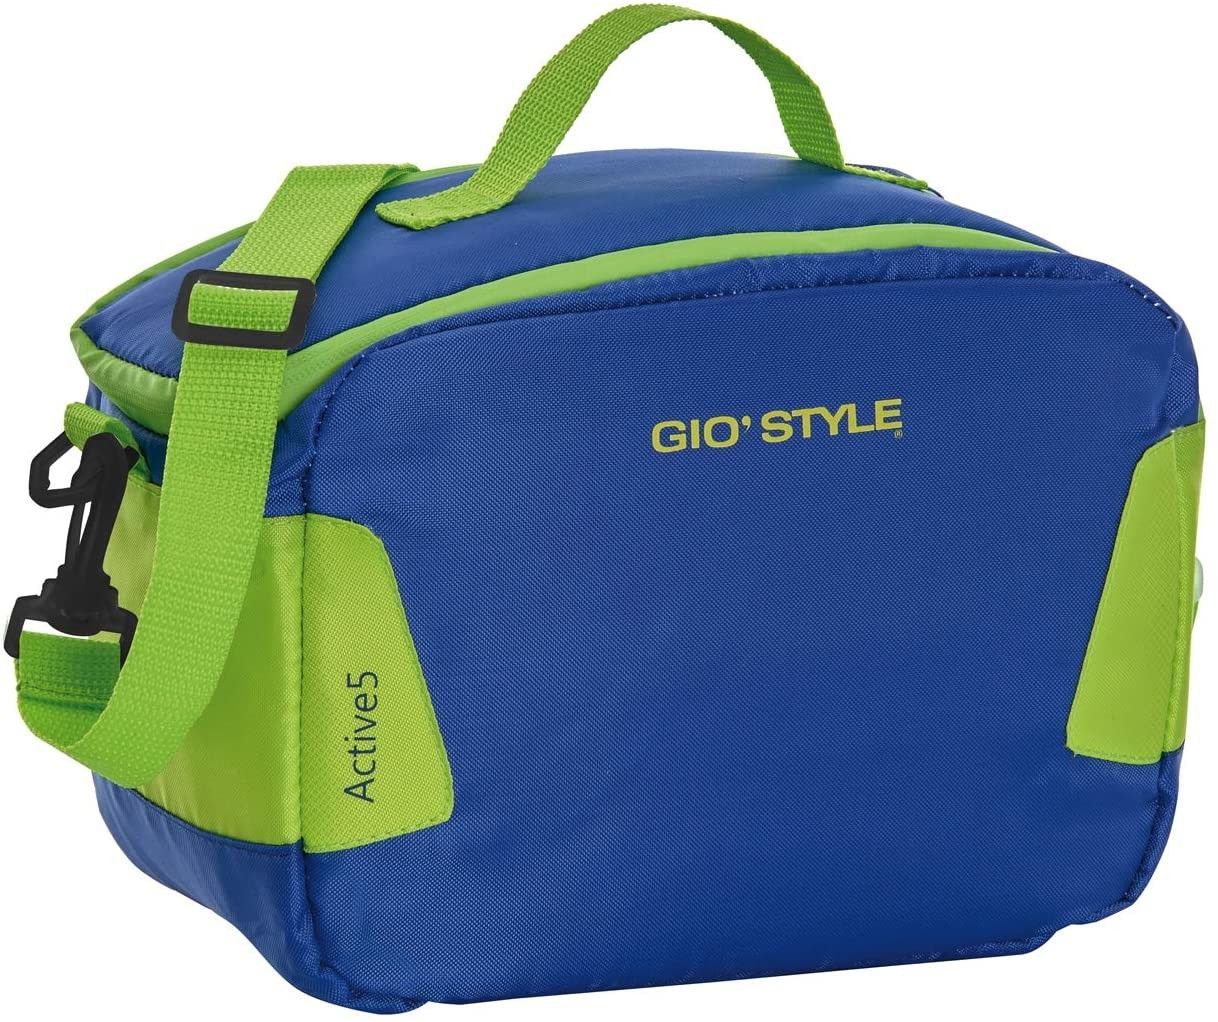 Giostyle 123 Lunch Bag lt.7 Active, Poliestere, Multicolore